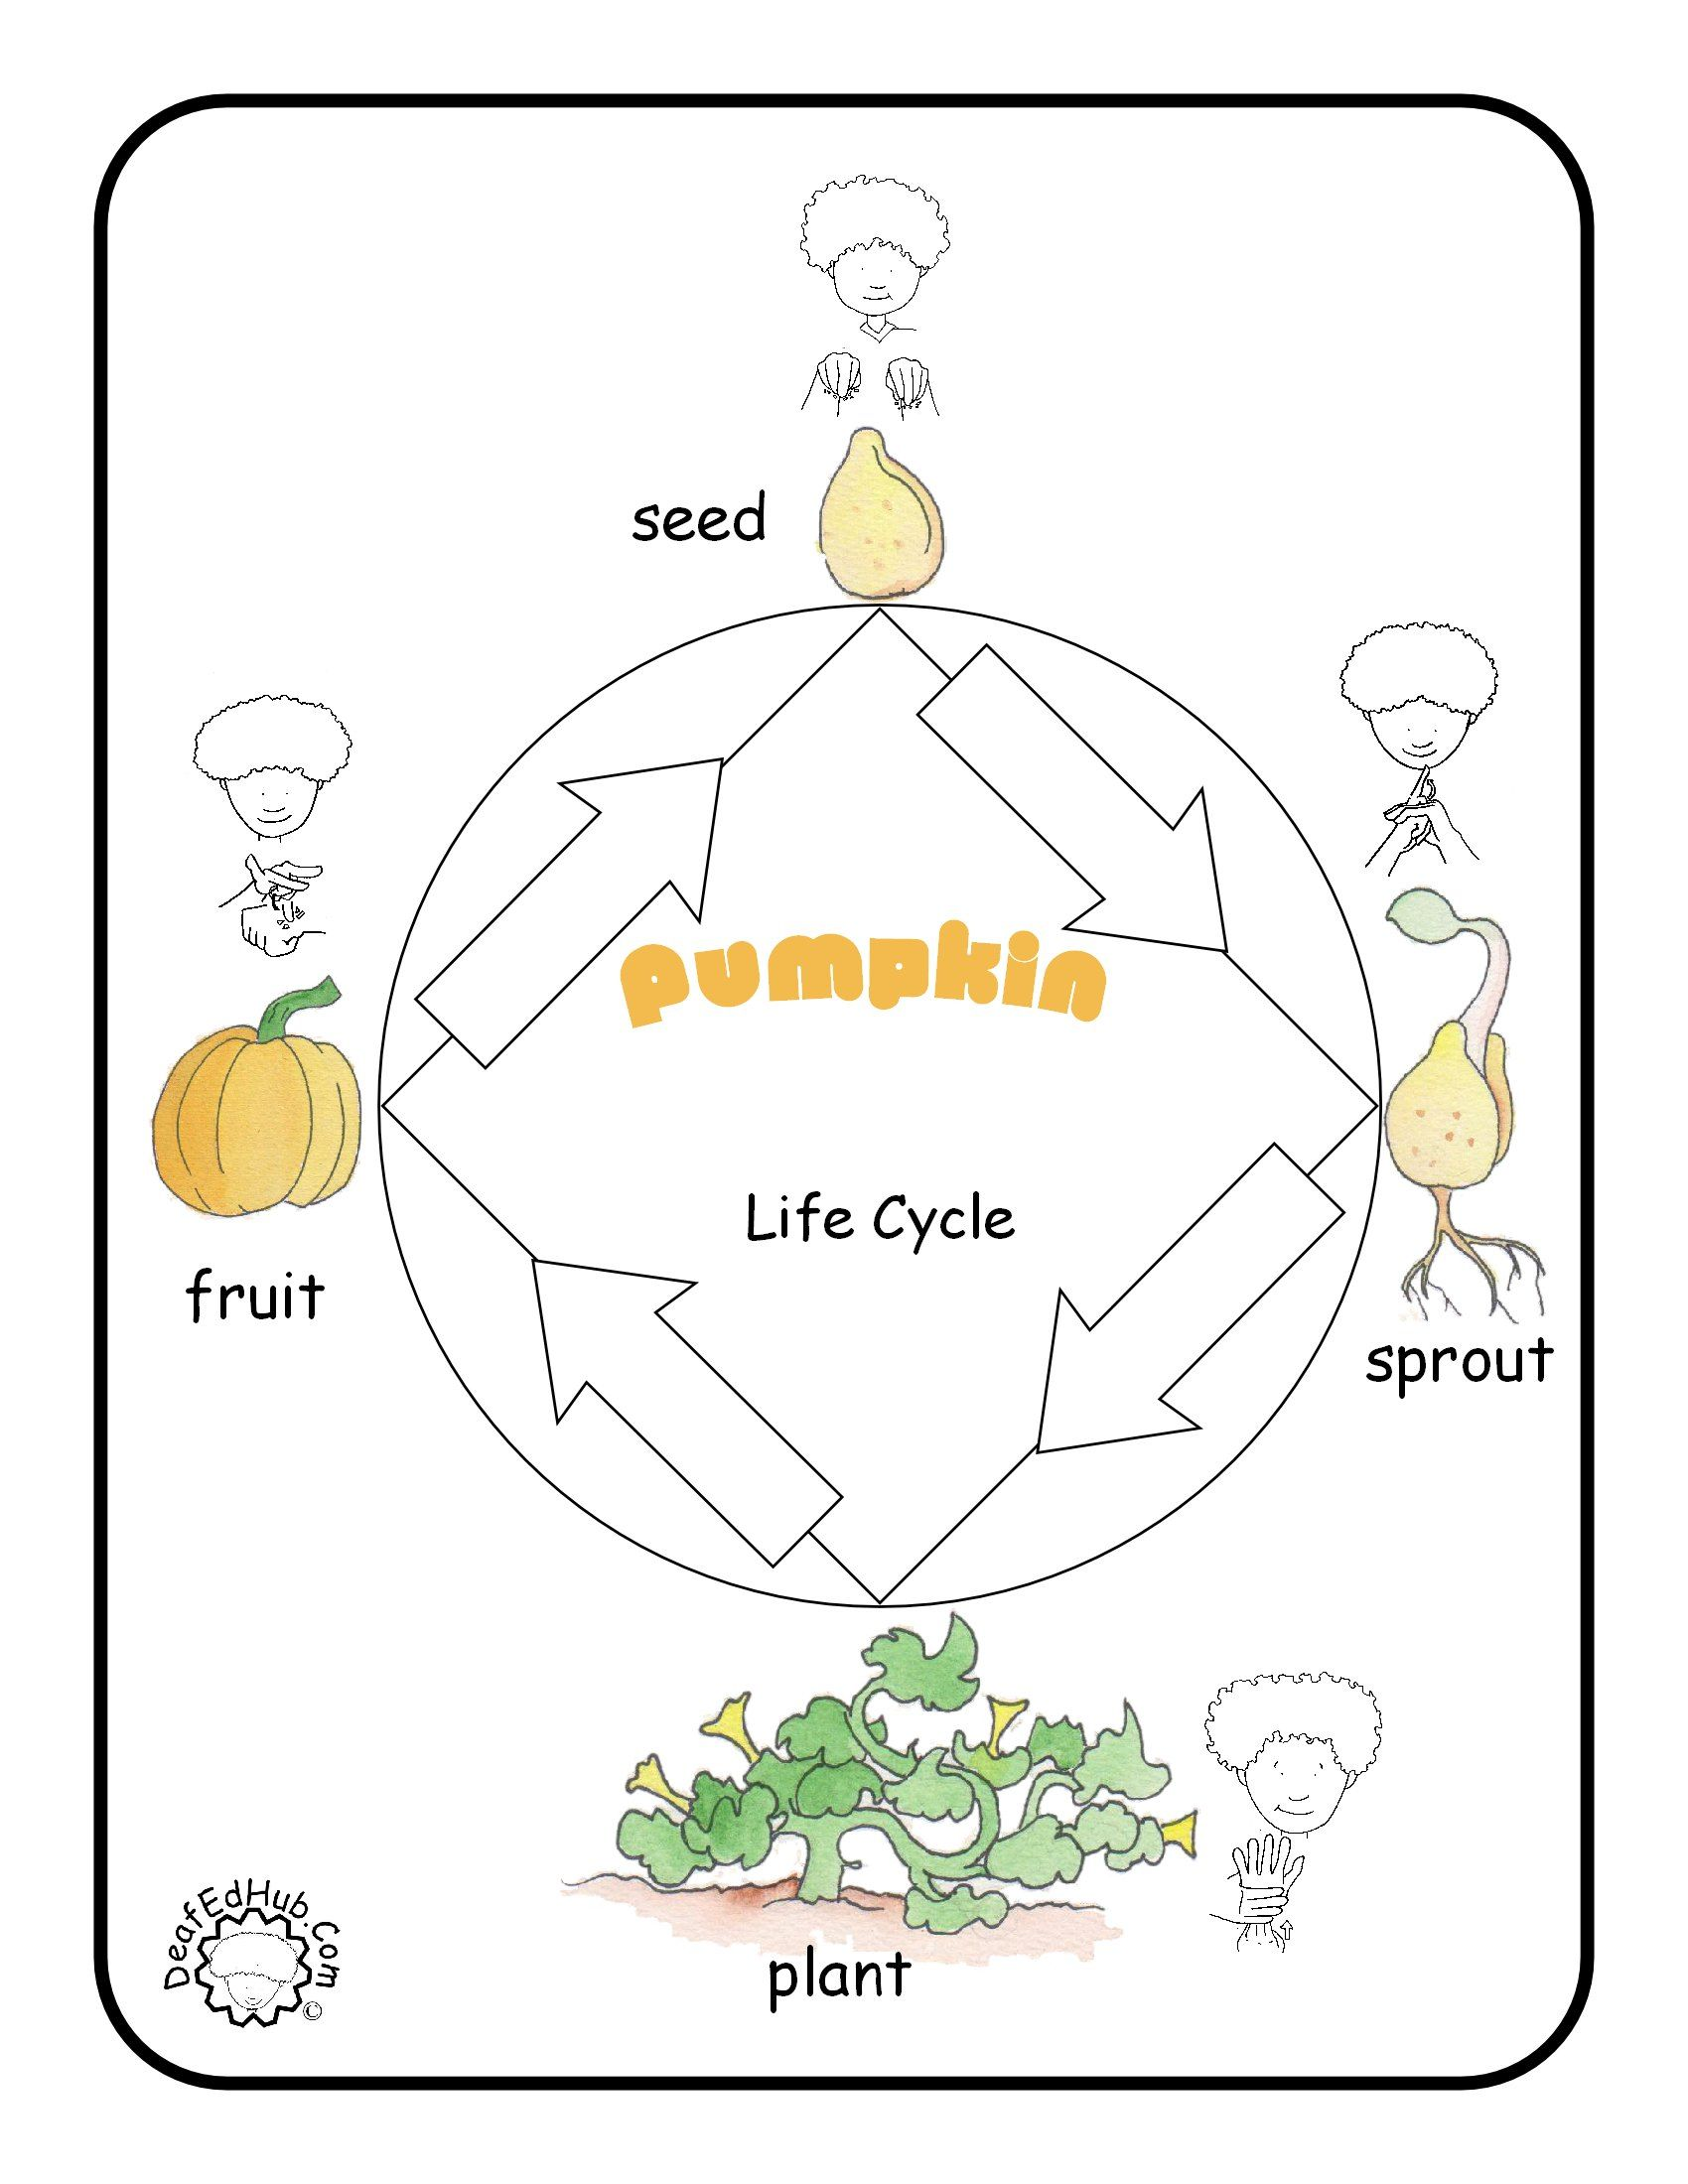 Free Worksheet. Life Cycle Of A Pumpkin Worksheet ...